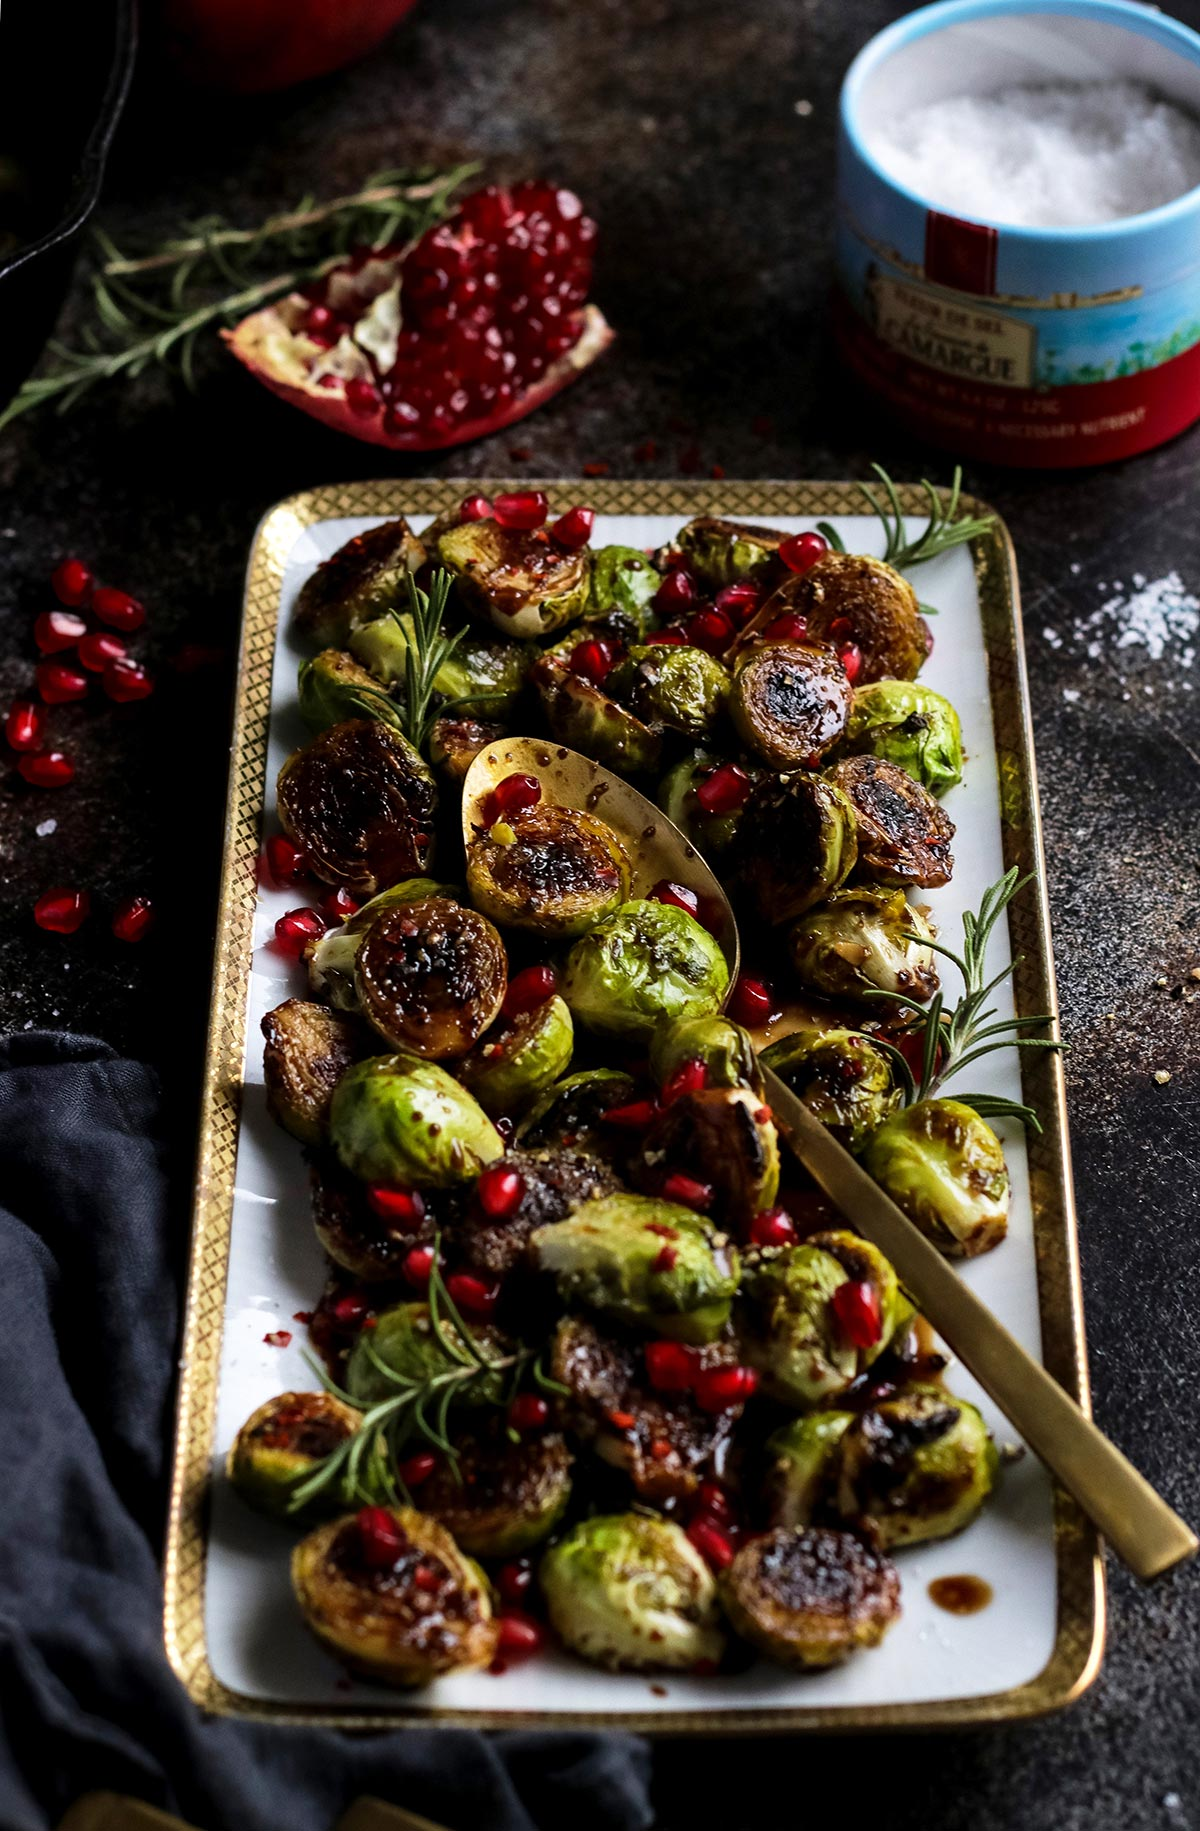 Maple Glazed Brussel Sprouts Garnished with Pomegranate Seeds.